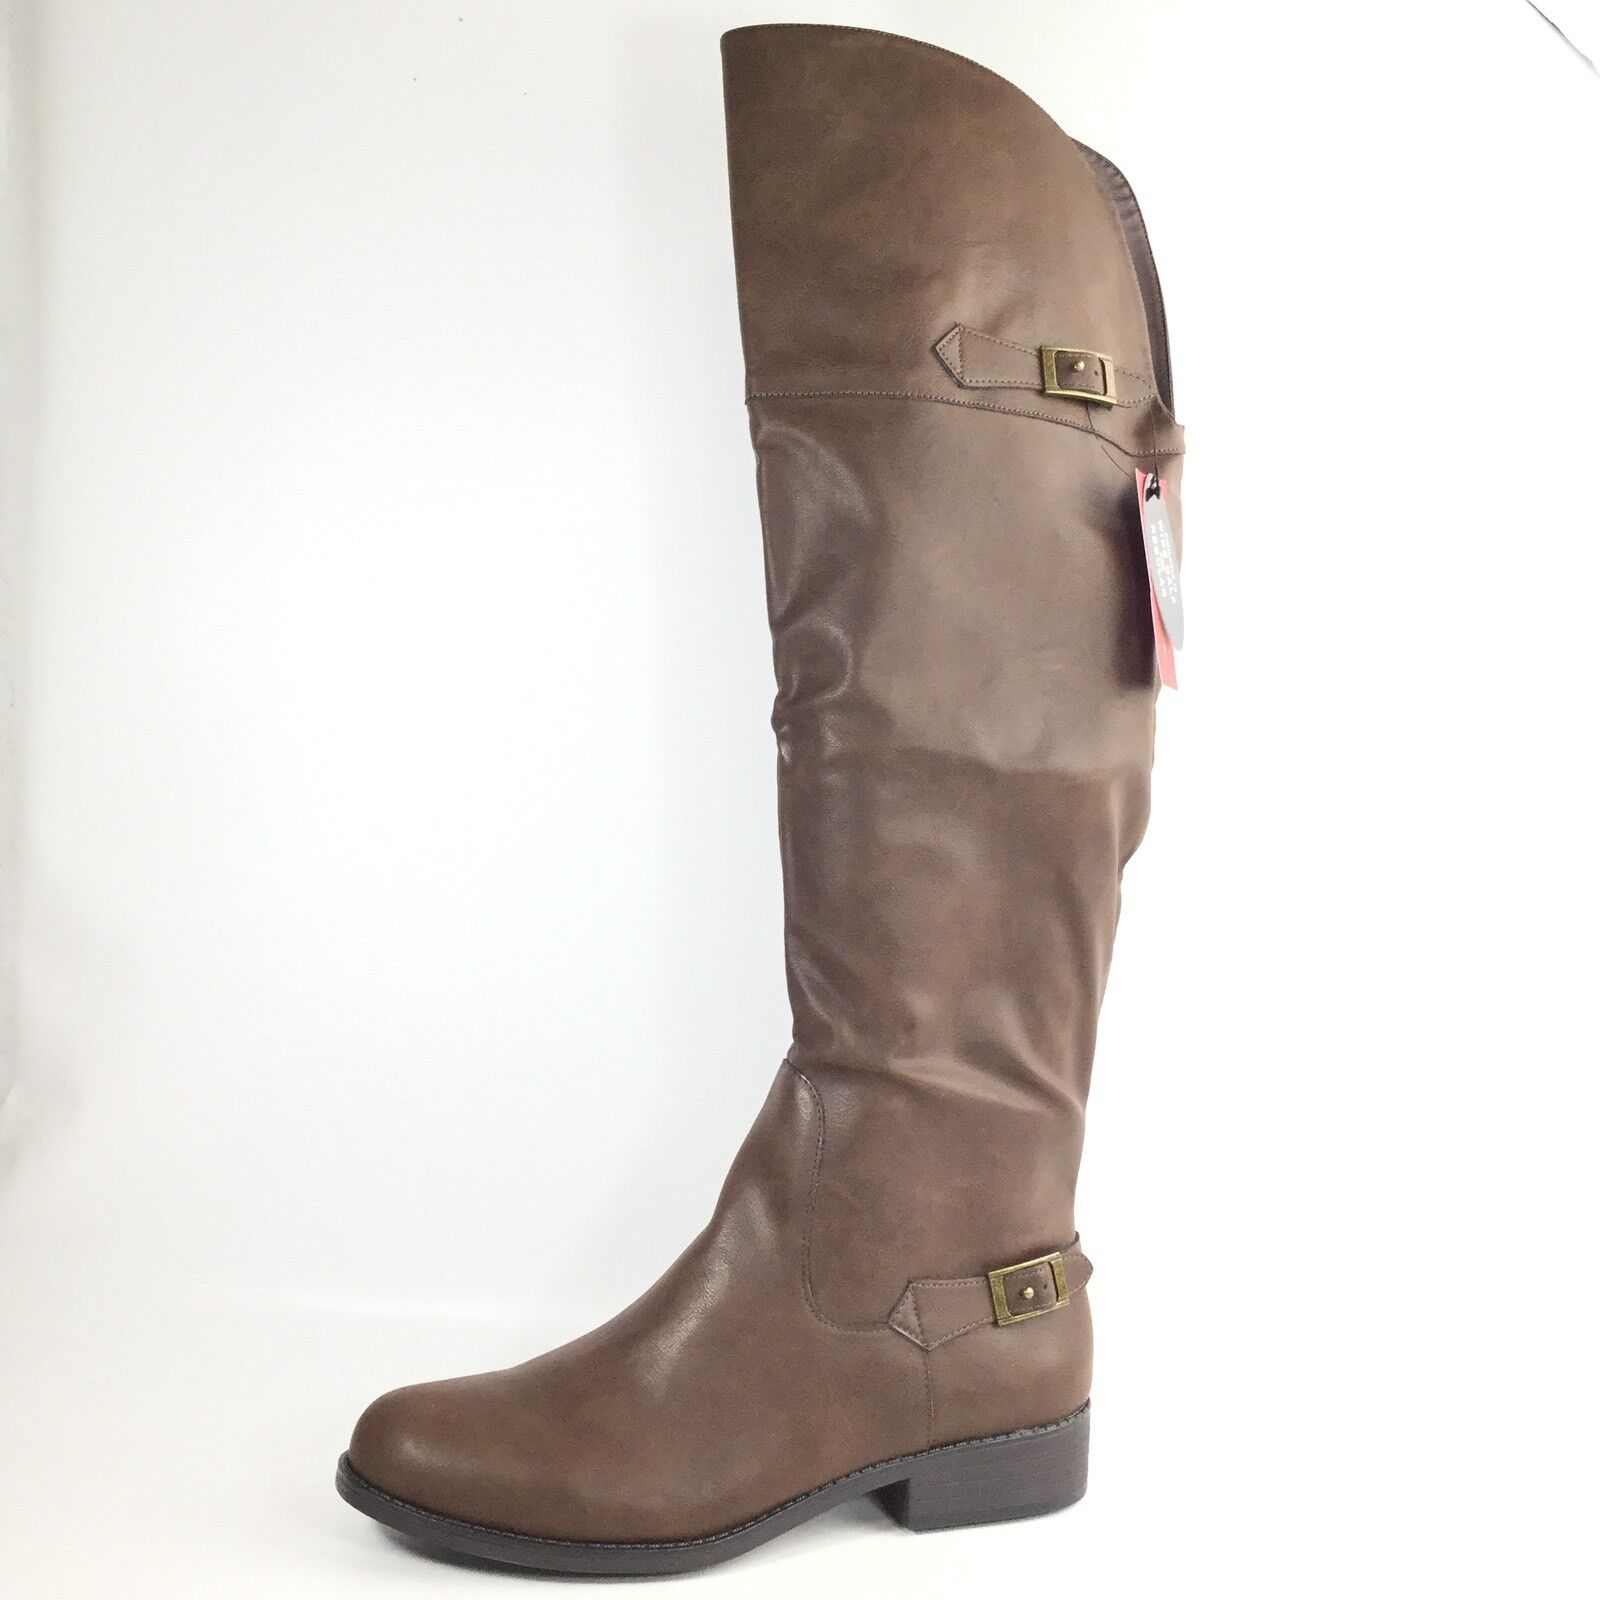 American Rag Ada Womens Size 11 M Brown Over The Knee Boots